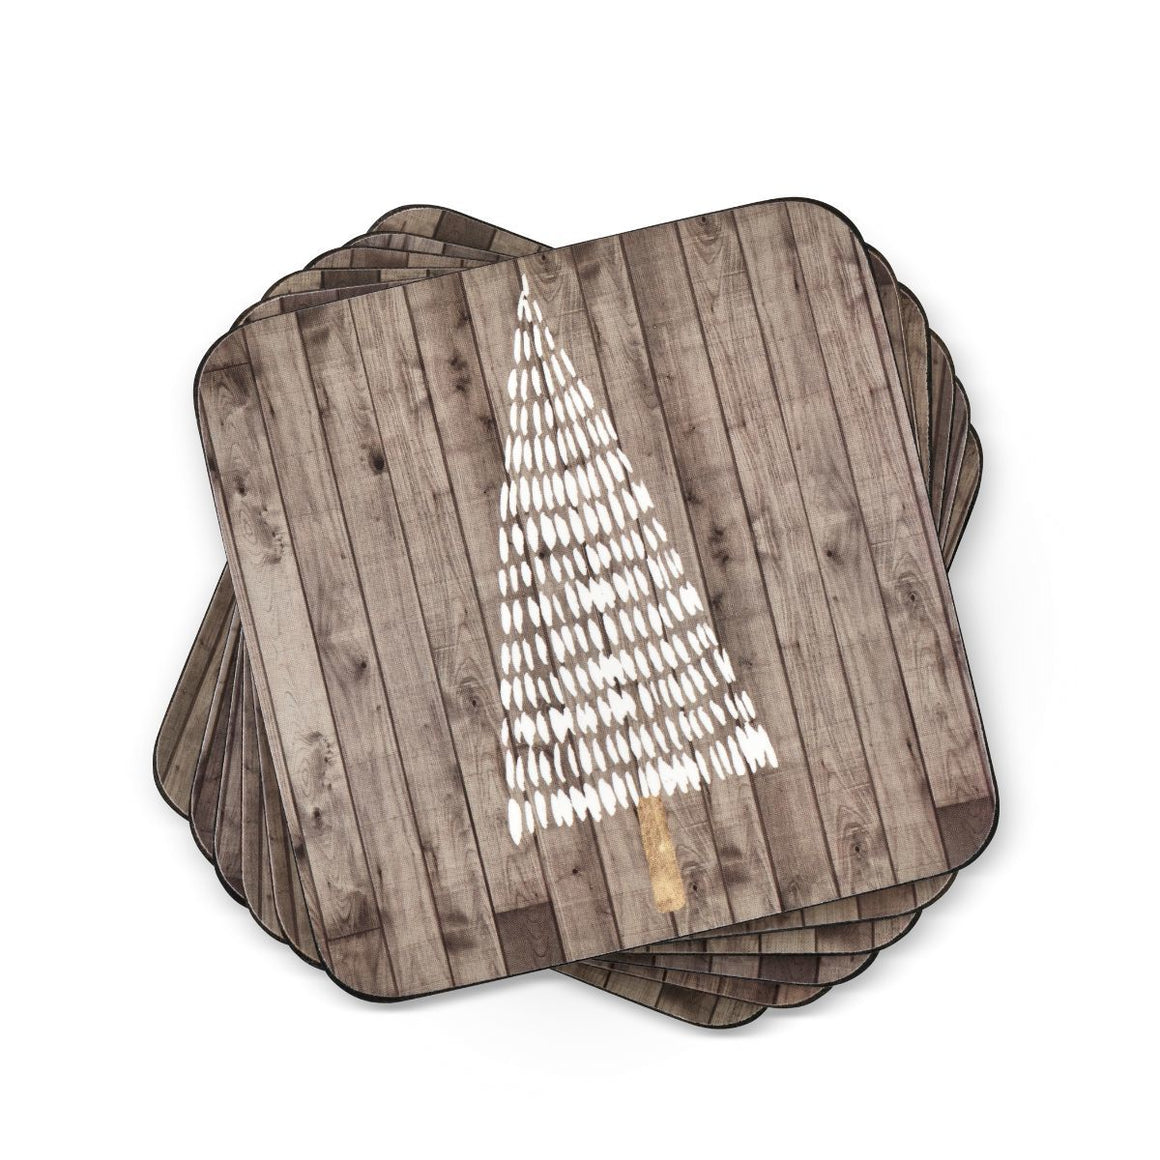 Wooden White Christmas Coasters, Set of 6